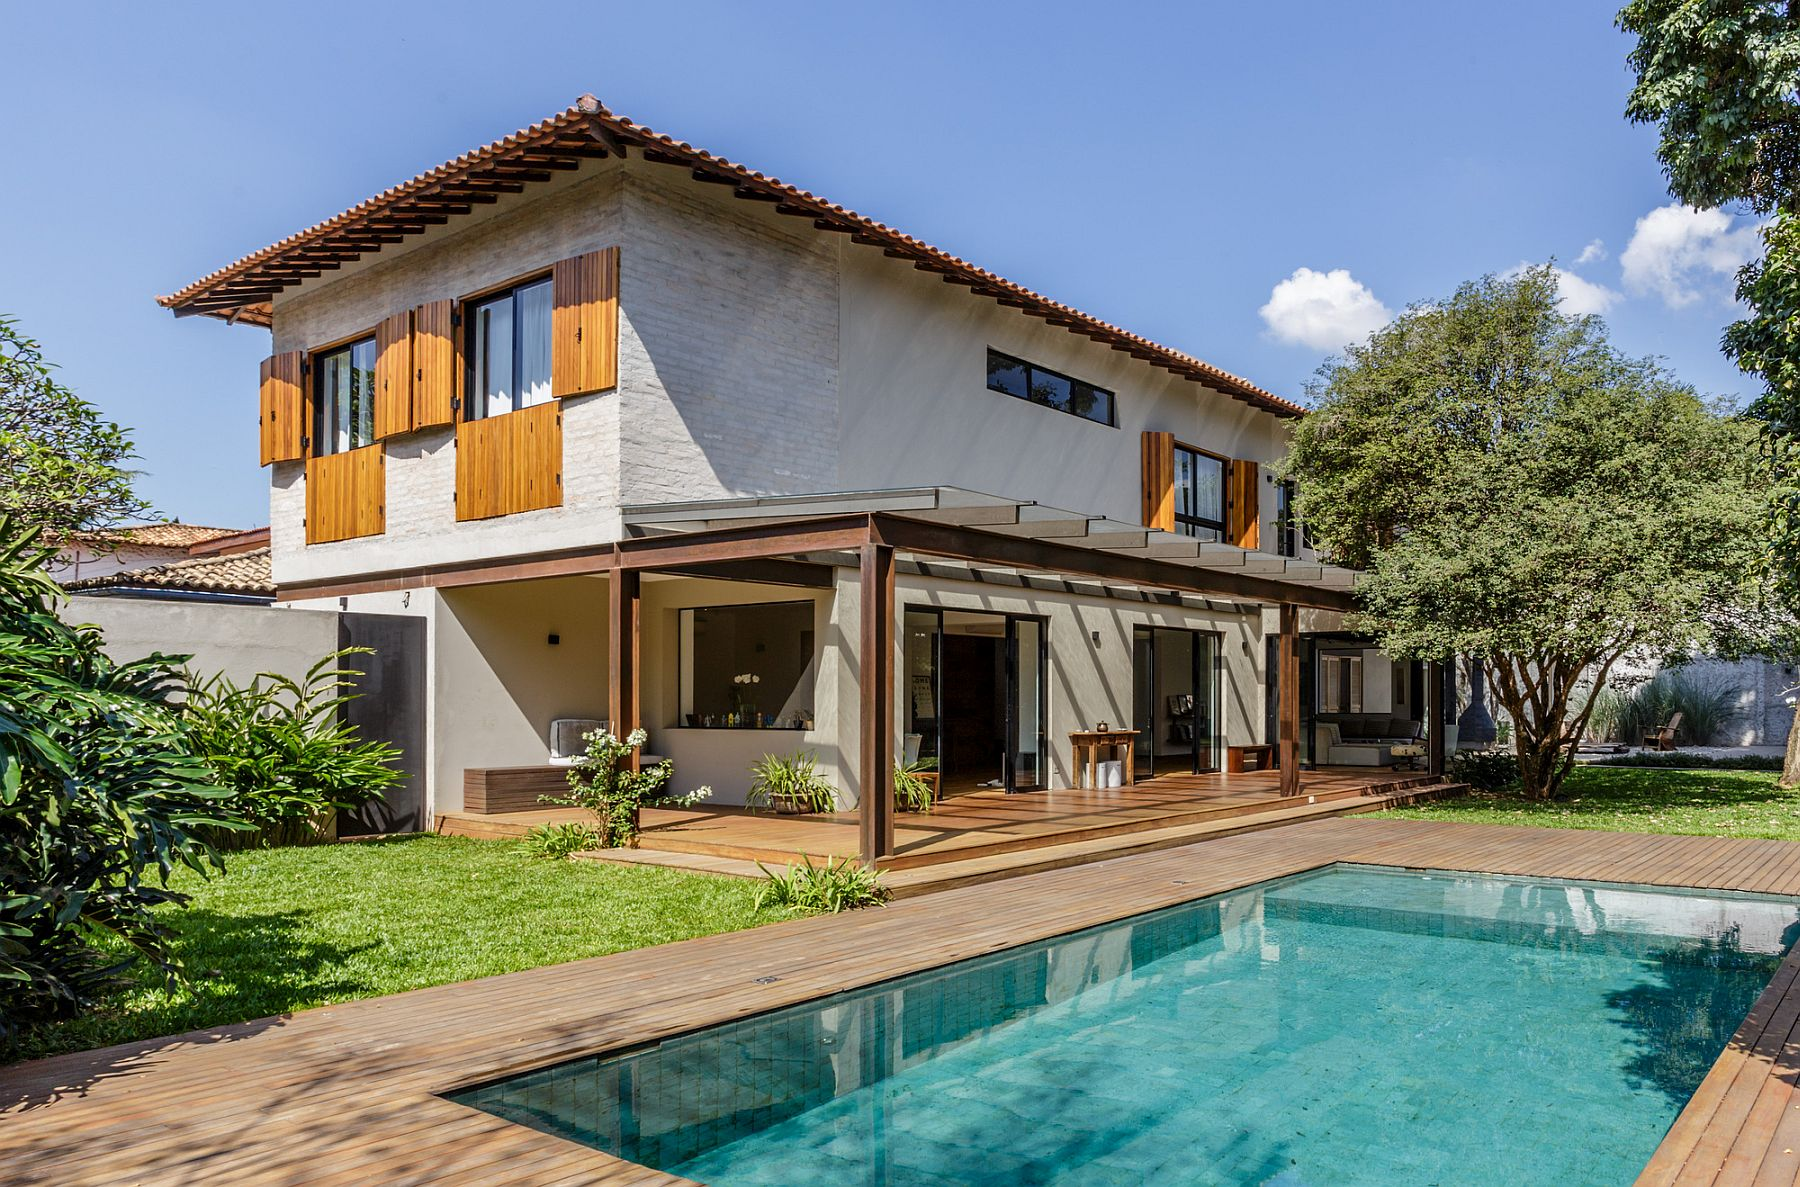 Revamped 50s home in Sao Paulo, Brazil with smart indoor-outdoor interplay